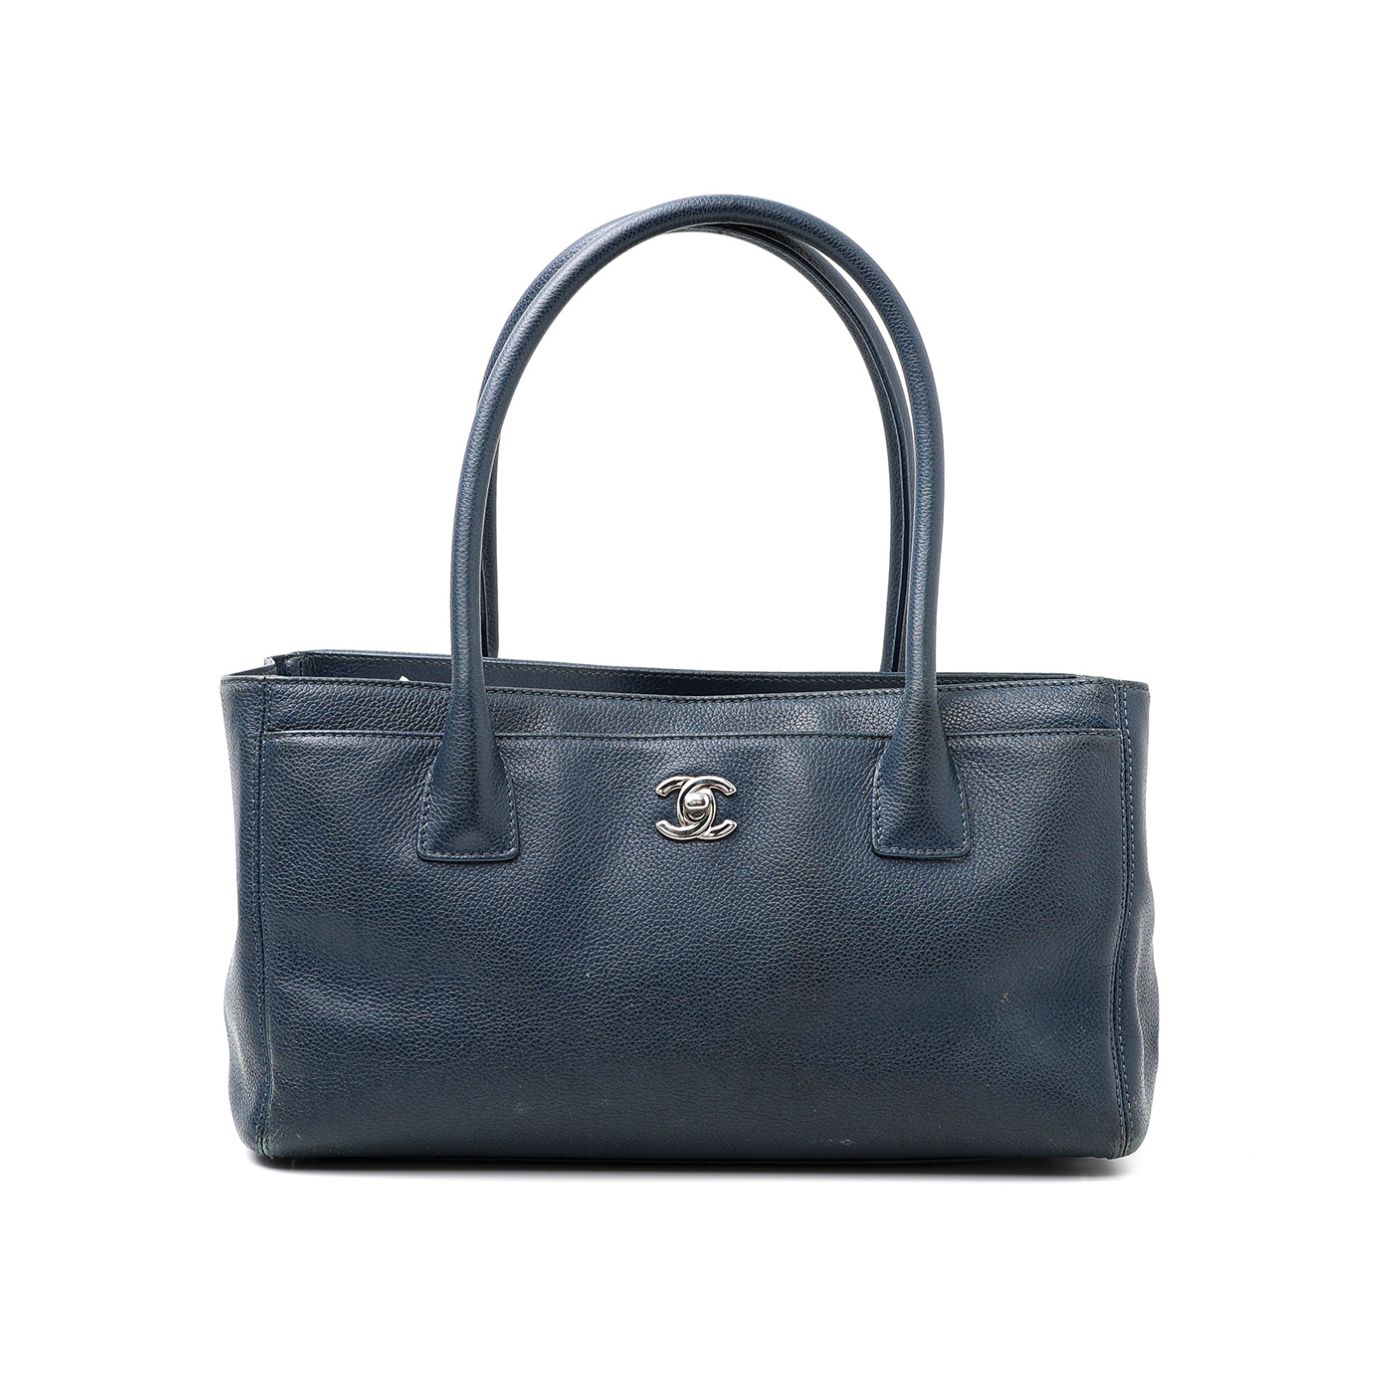 Chanel Blue Executive Cerf Tote Bag